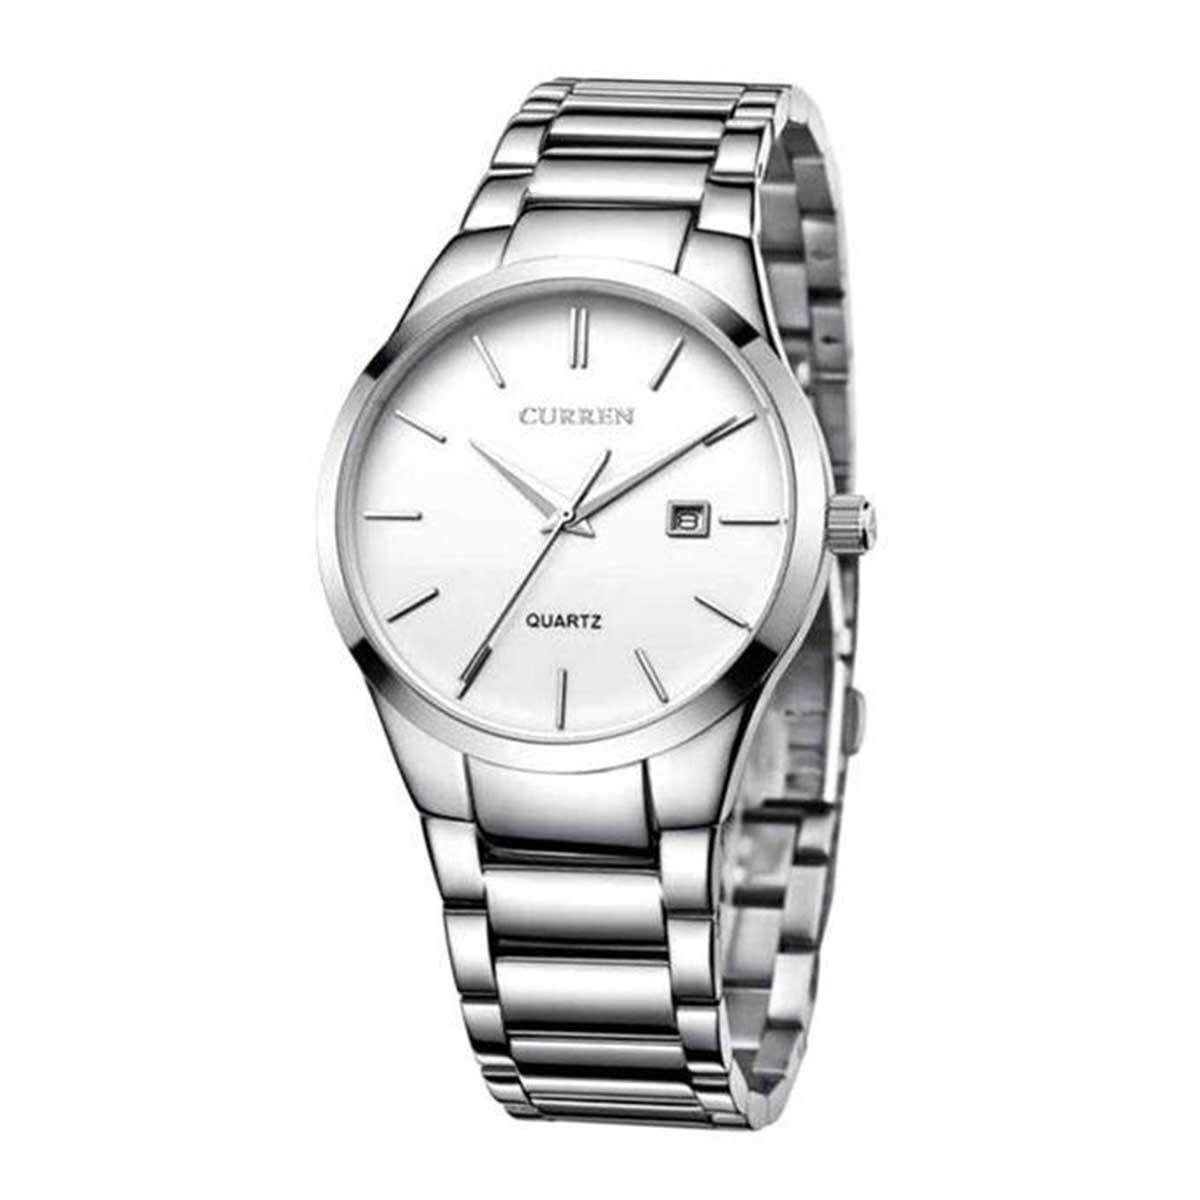 Curren 8106 Silver Stainless Steel Wrist Watch for Men - White & Silver